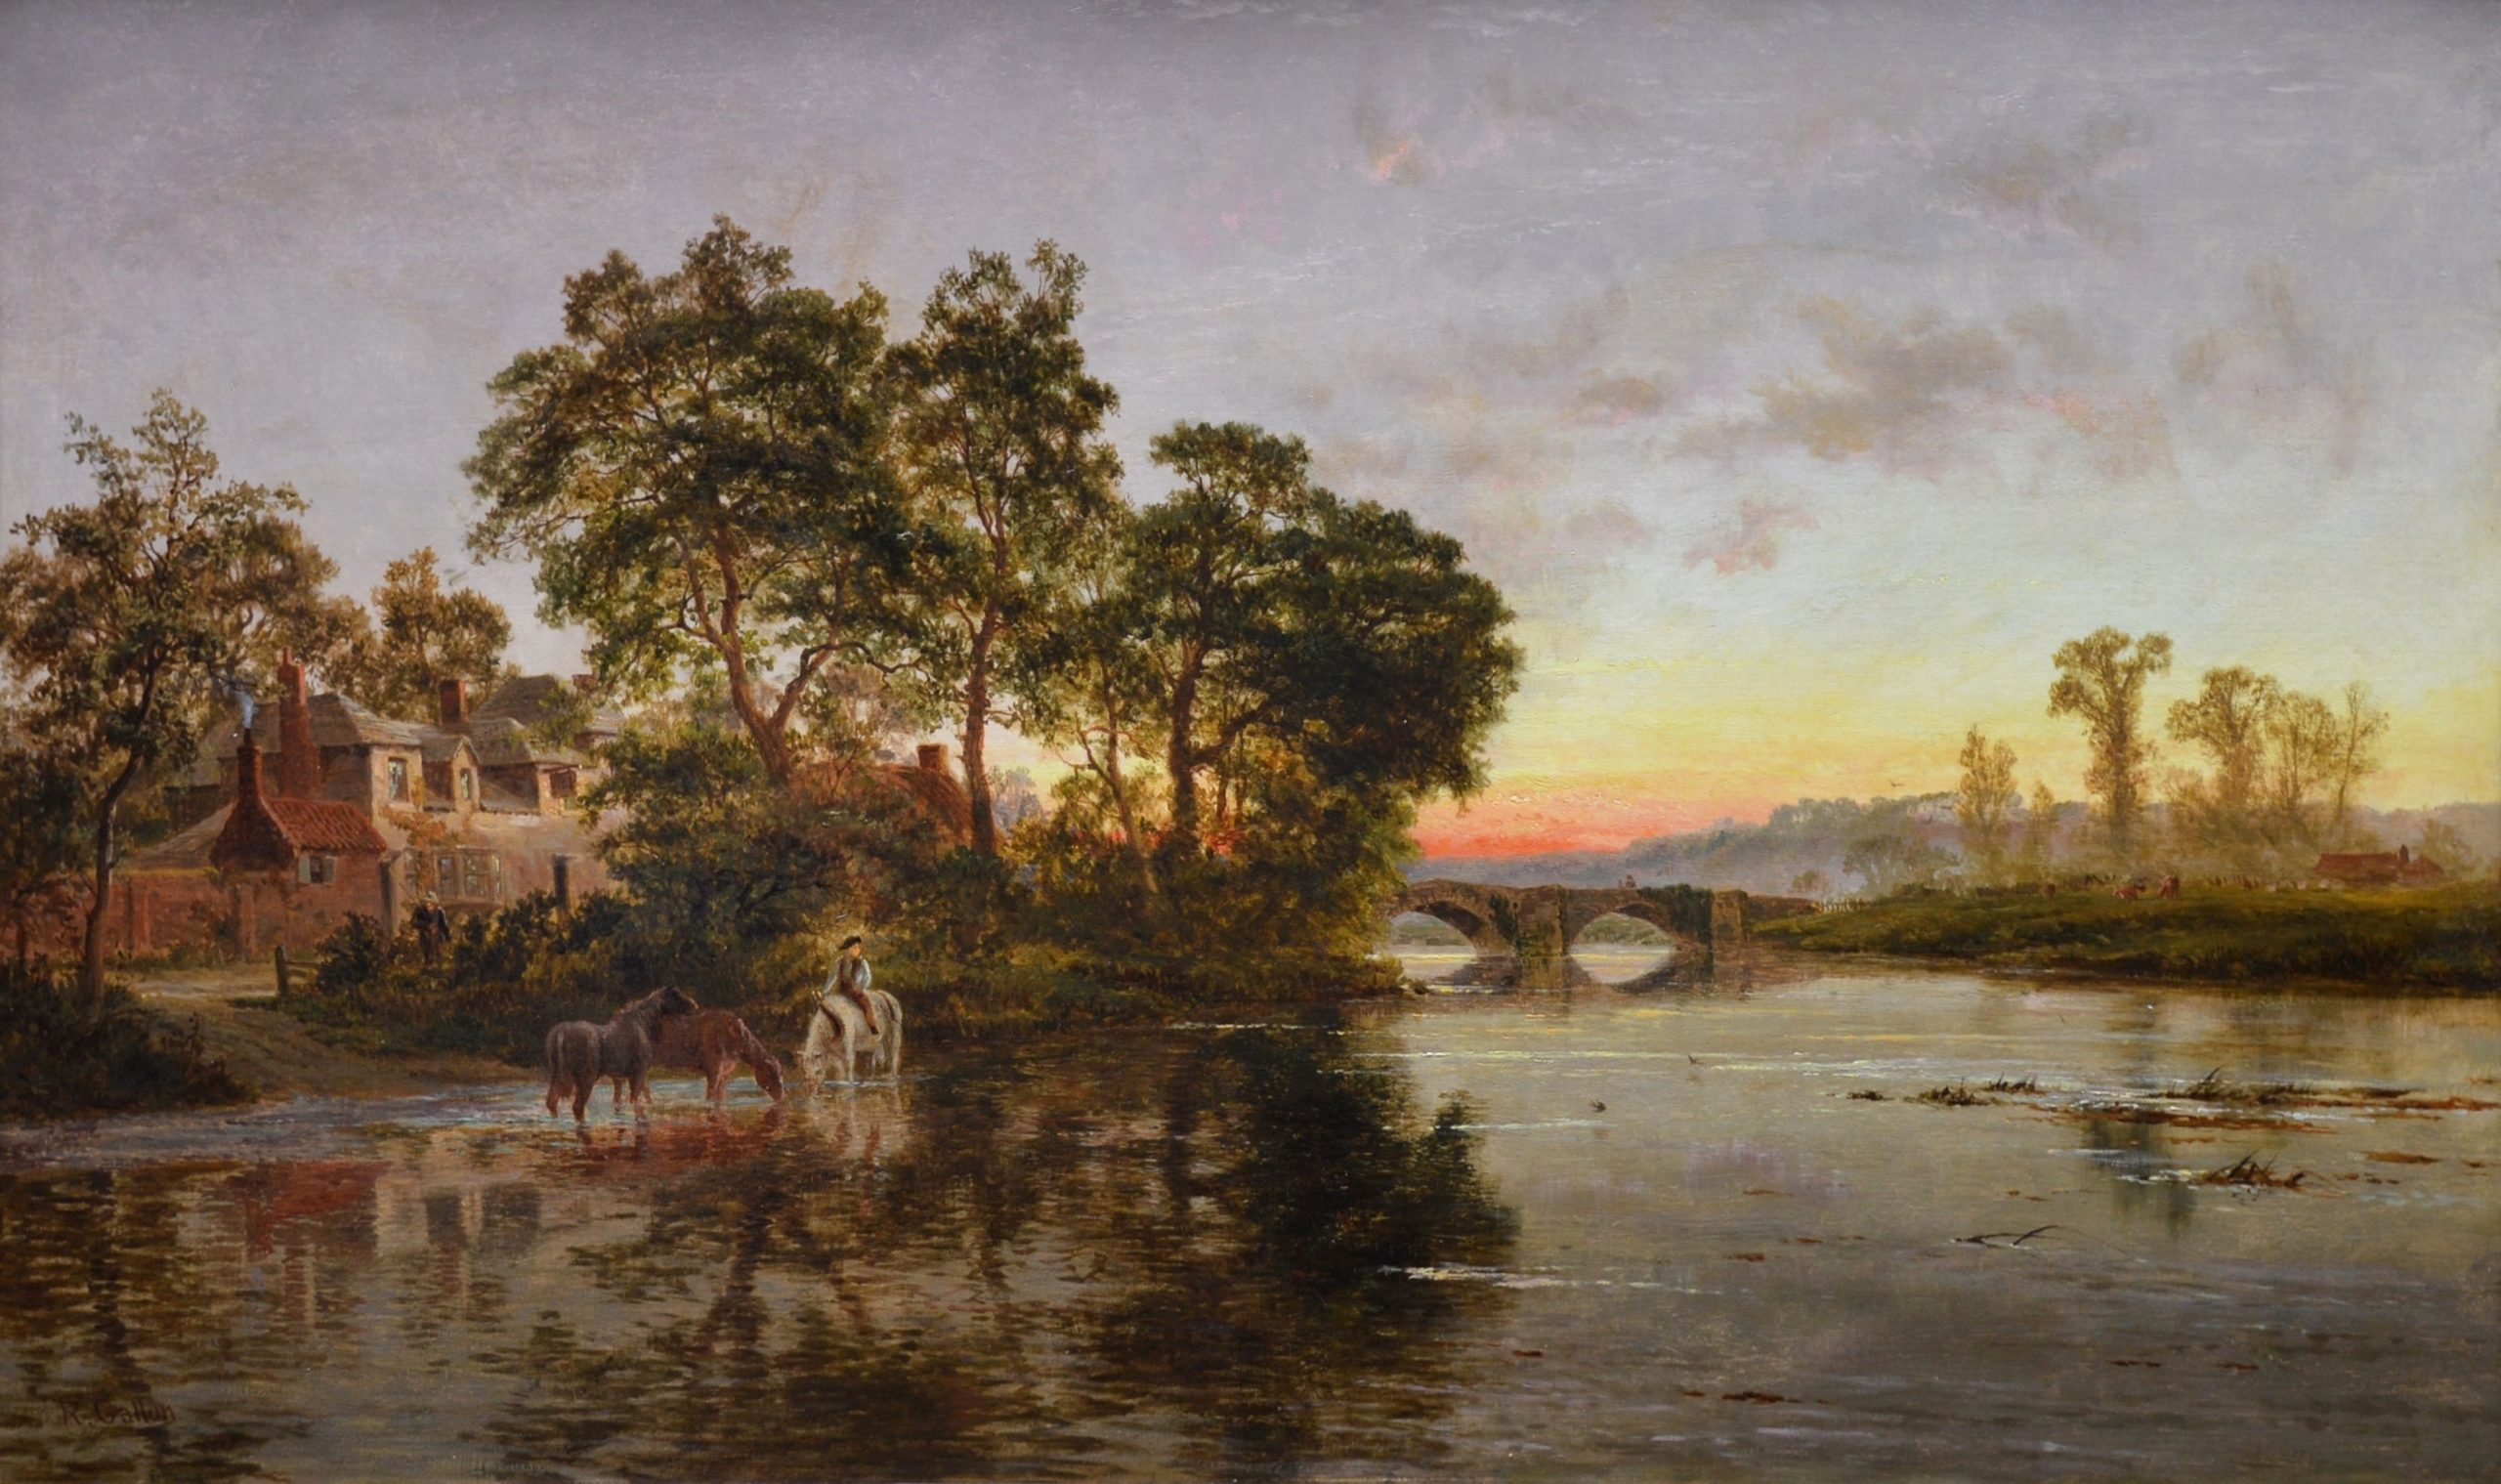 On the Thames near Shillingford - 19th Century Sunset Landscape Oil Painting Image